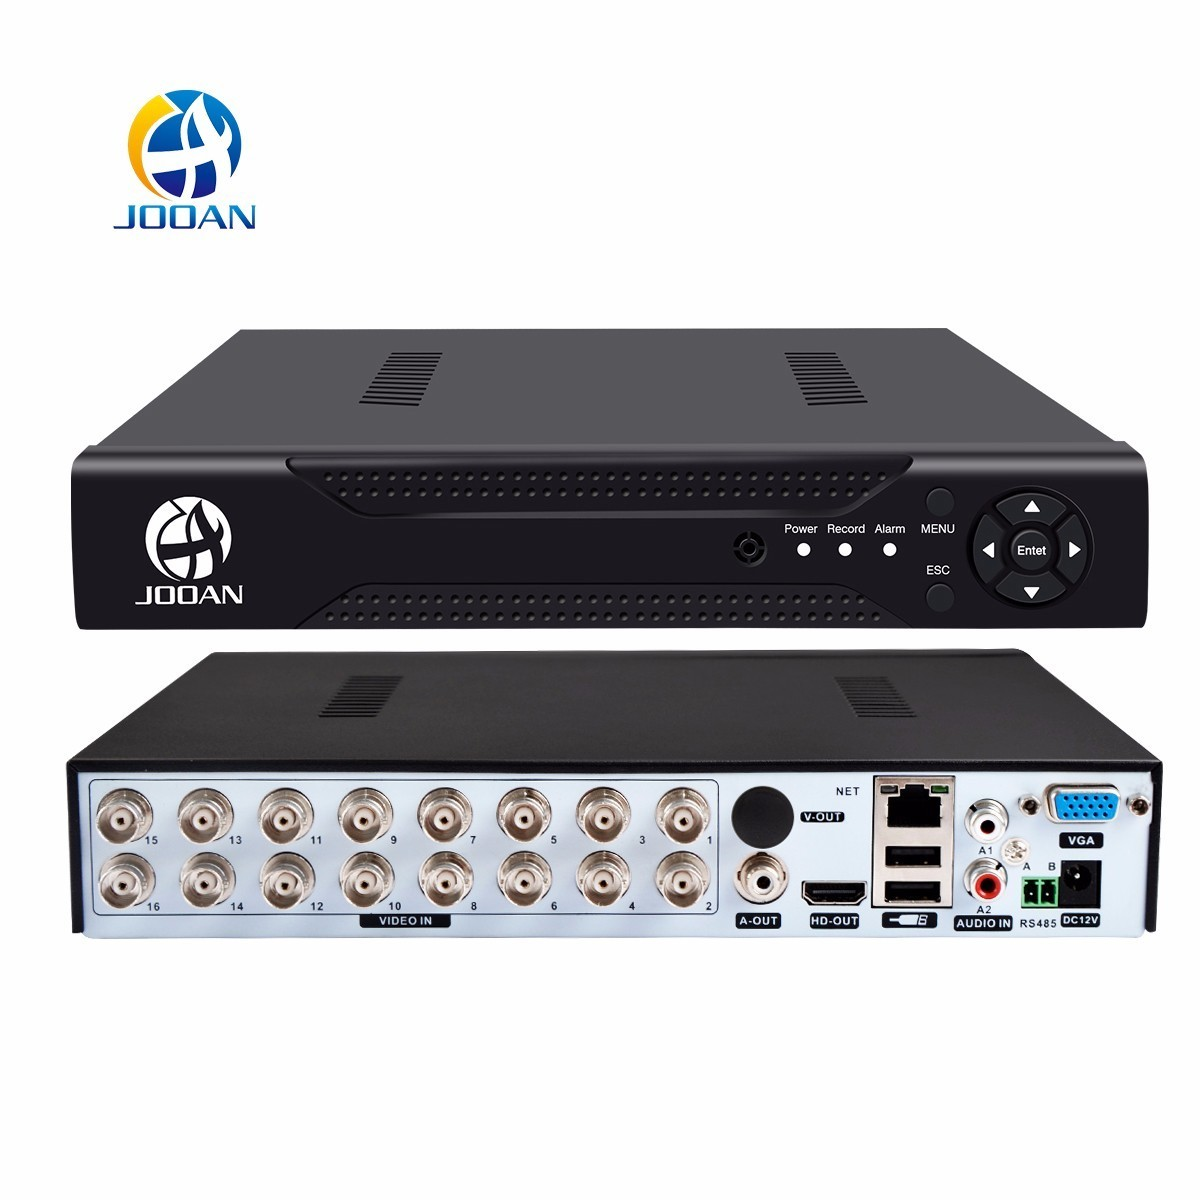 bilder für JOOAN 4216 T 16CH CCTV DVR H.264 HD-OUT P2P Wolke video recorder home Überwachung CCTV digital video recorder